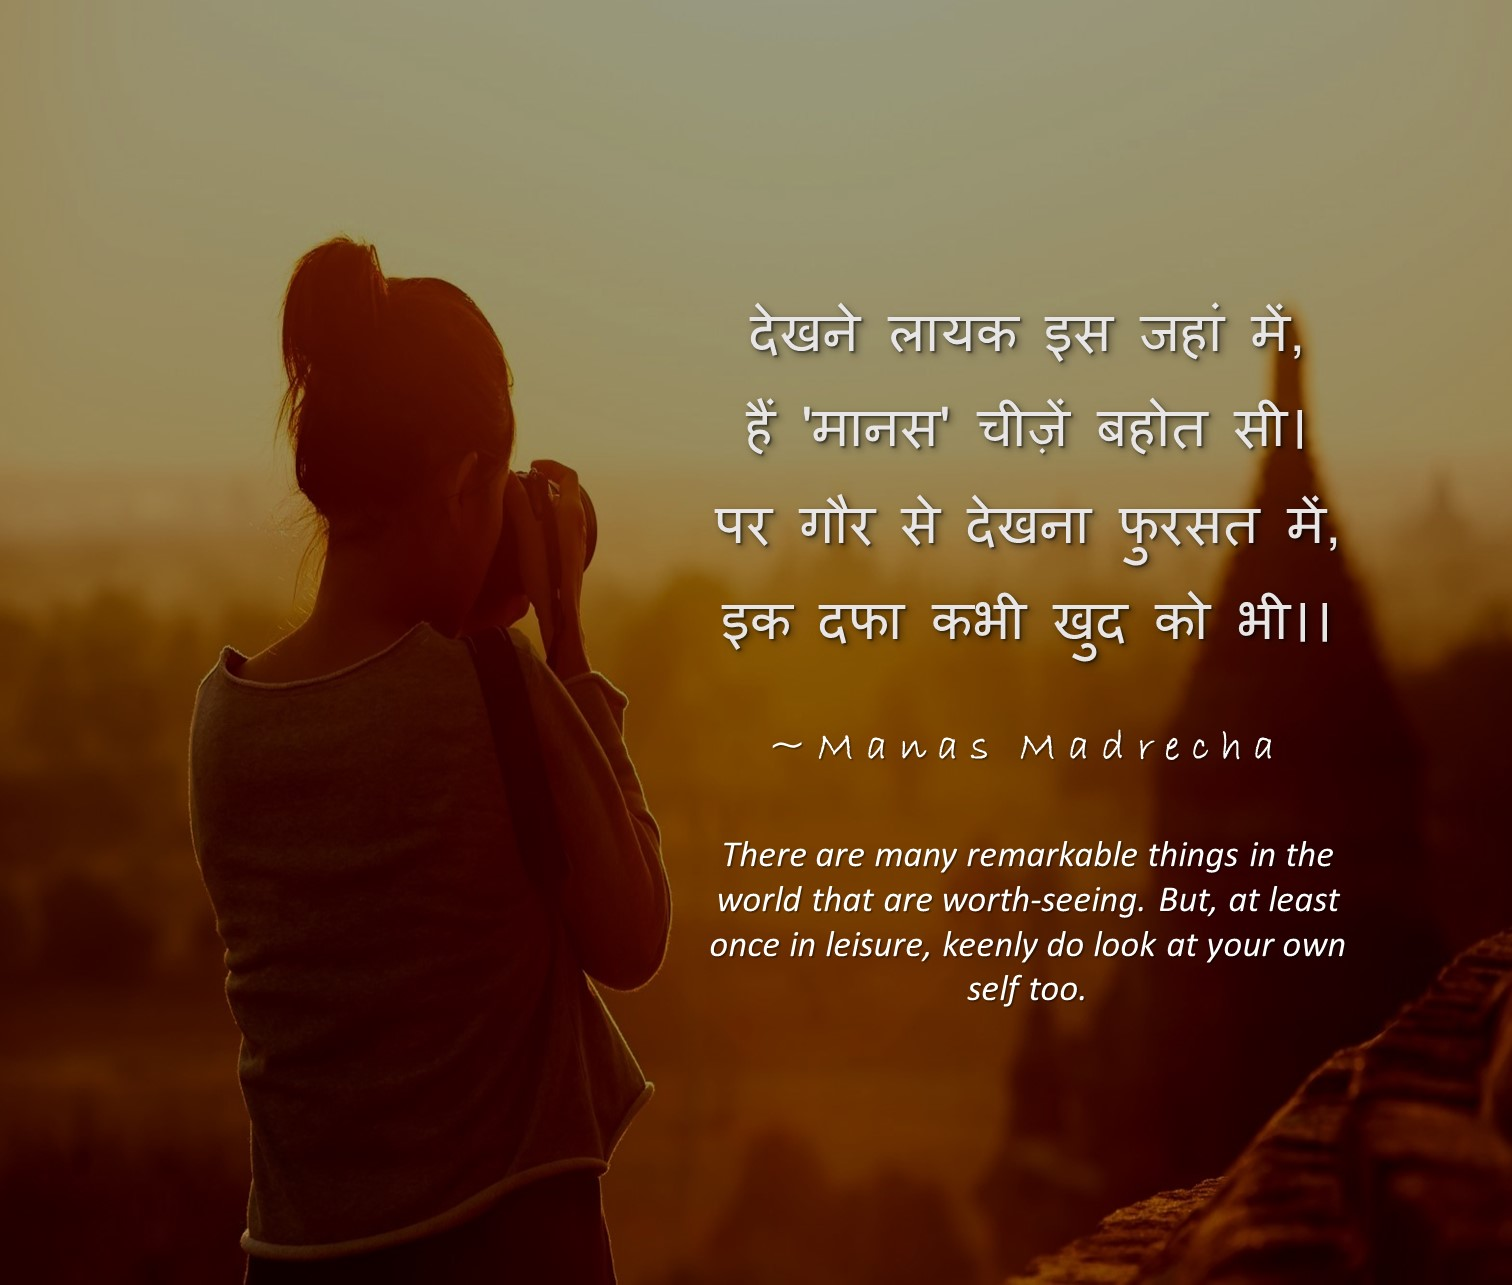 girl clicking pic, girl clicking photo, girl doing photography, girl taking photo tumblr, indian temple sunset, girl facing back, girl mood wallpaper, girl in sunshine, Manas Madrecha, Manas Madrecha blog, simplifying universe, hindi poem on self, hindi quotes, hindi shayari, inspirational poem, inspirational quotes, motivational quotes, first talk about yourself, pehle khud ki baat karo,